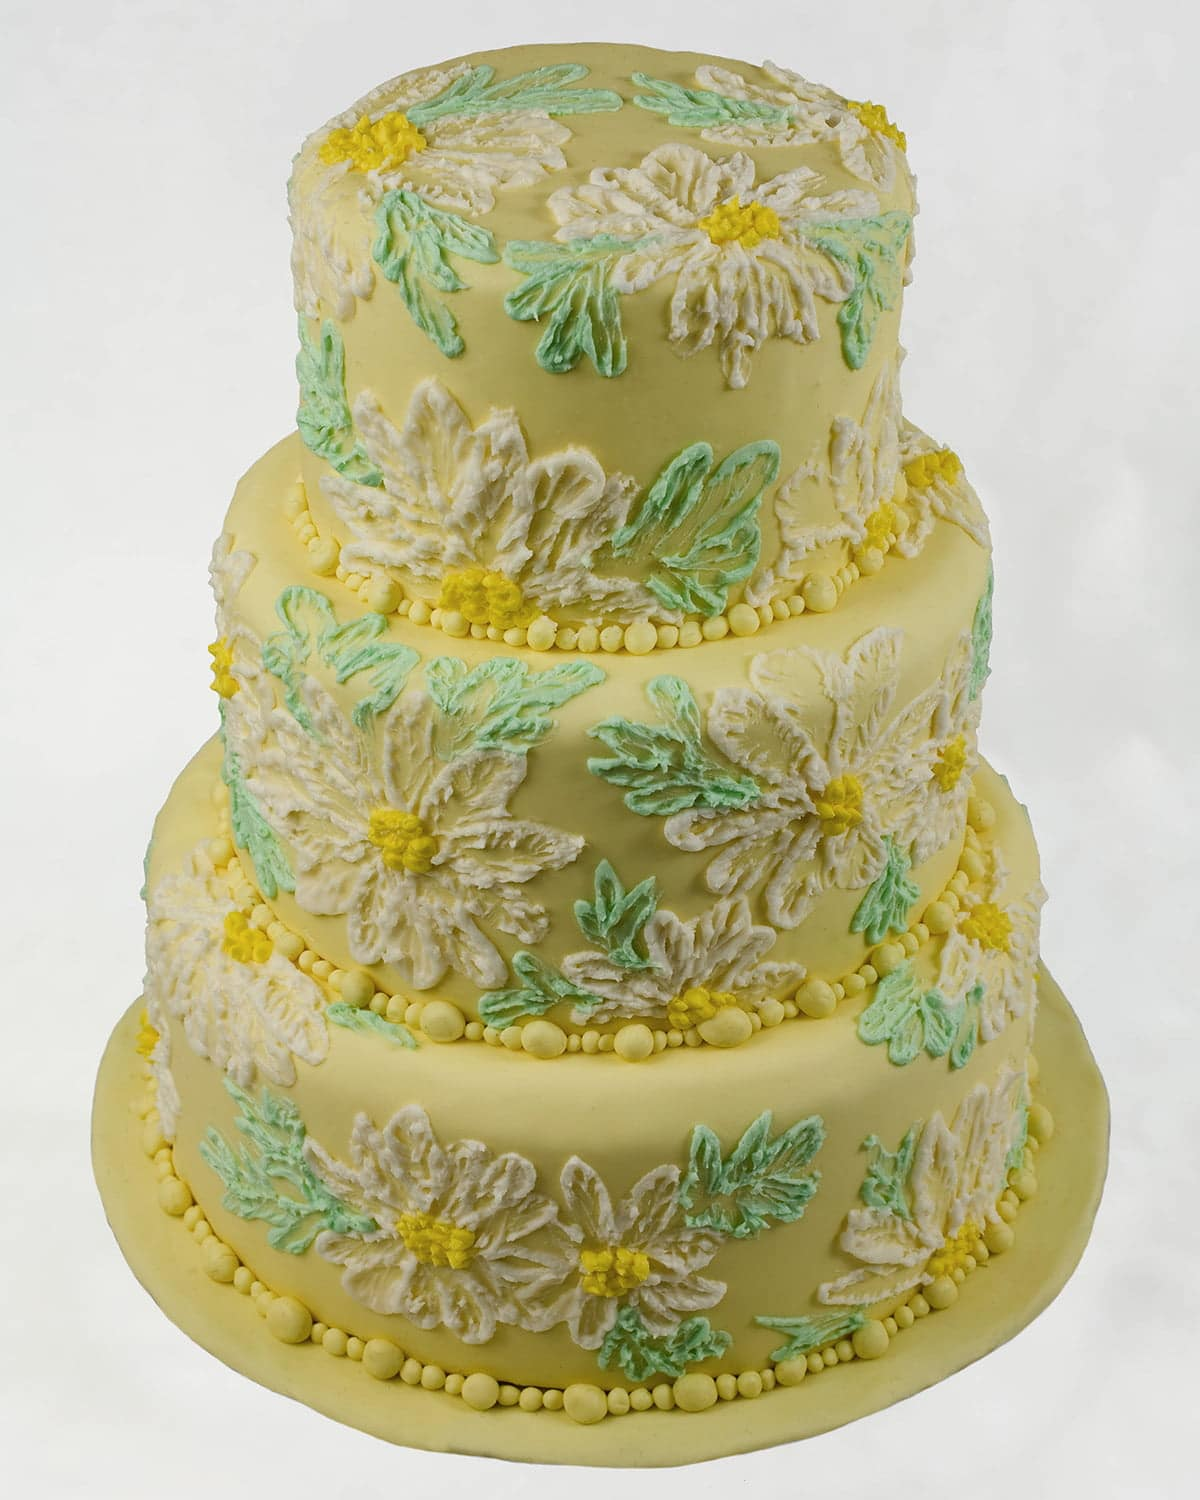 A 3 tiered round yellow cake is covered in piped daisies and leaves in whites and greens.